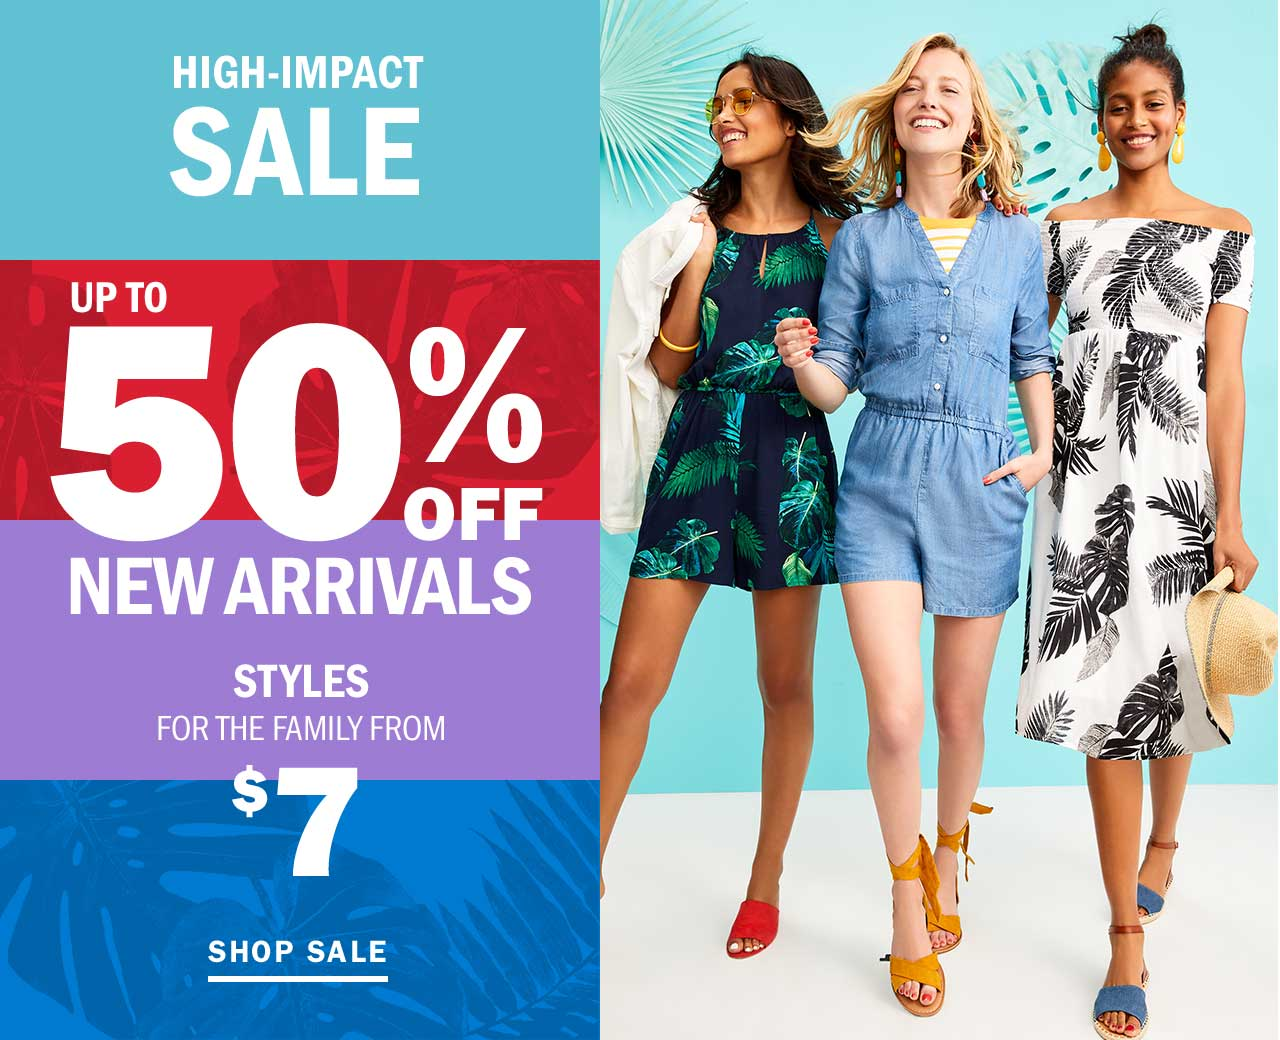 UP TO 50% OFF NEW ARRIVALS | SHOP SALE